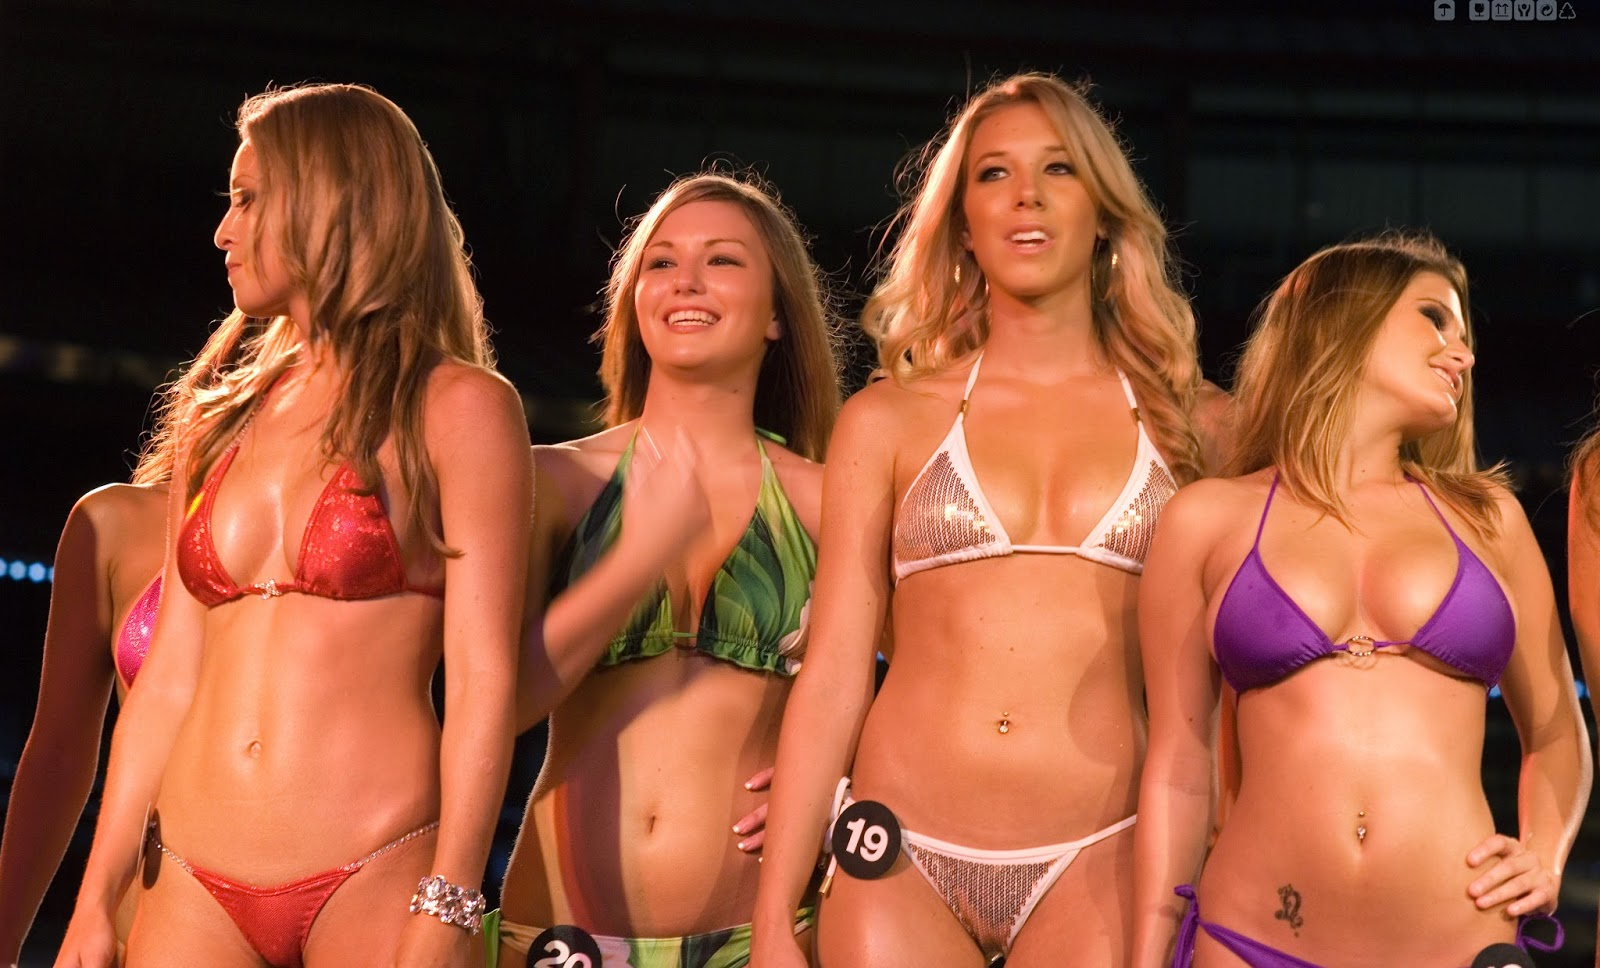 Horny girls at bikini contest